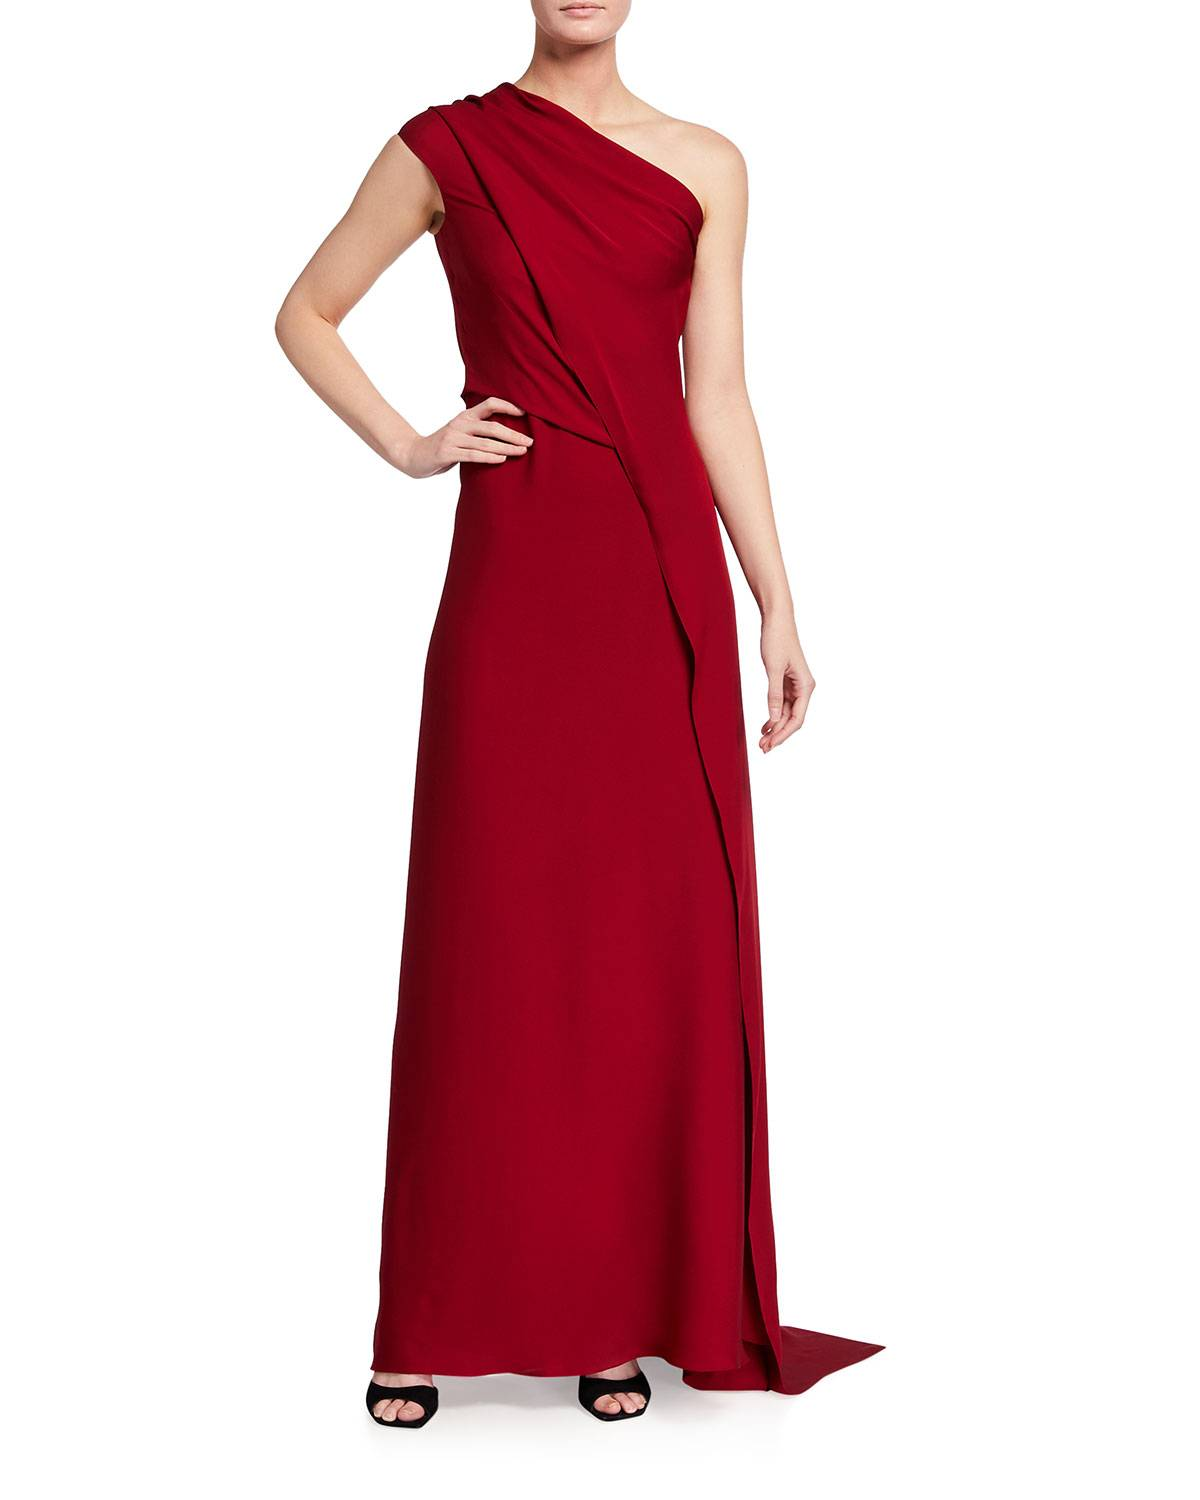 Roland Taishan One-Shoulder Georgette Gown - Size: 10 UK (6 US)